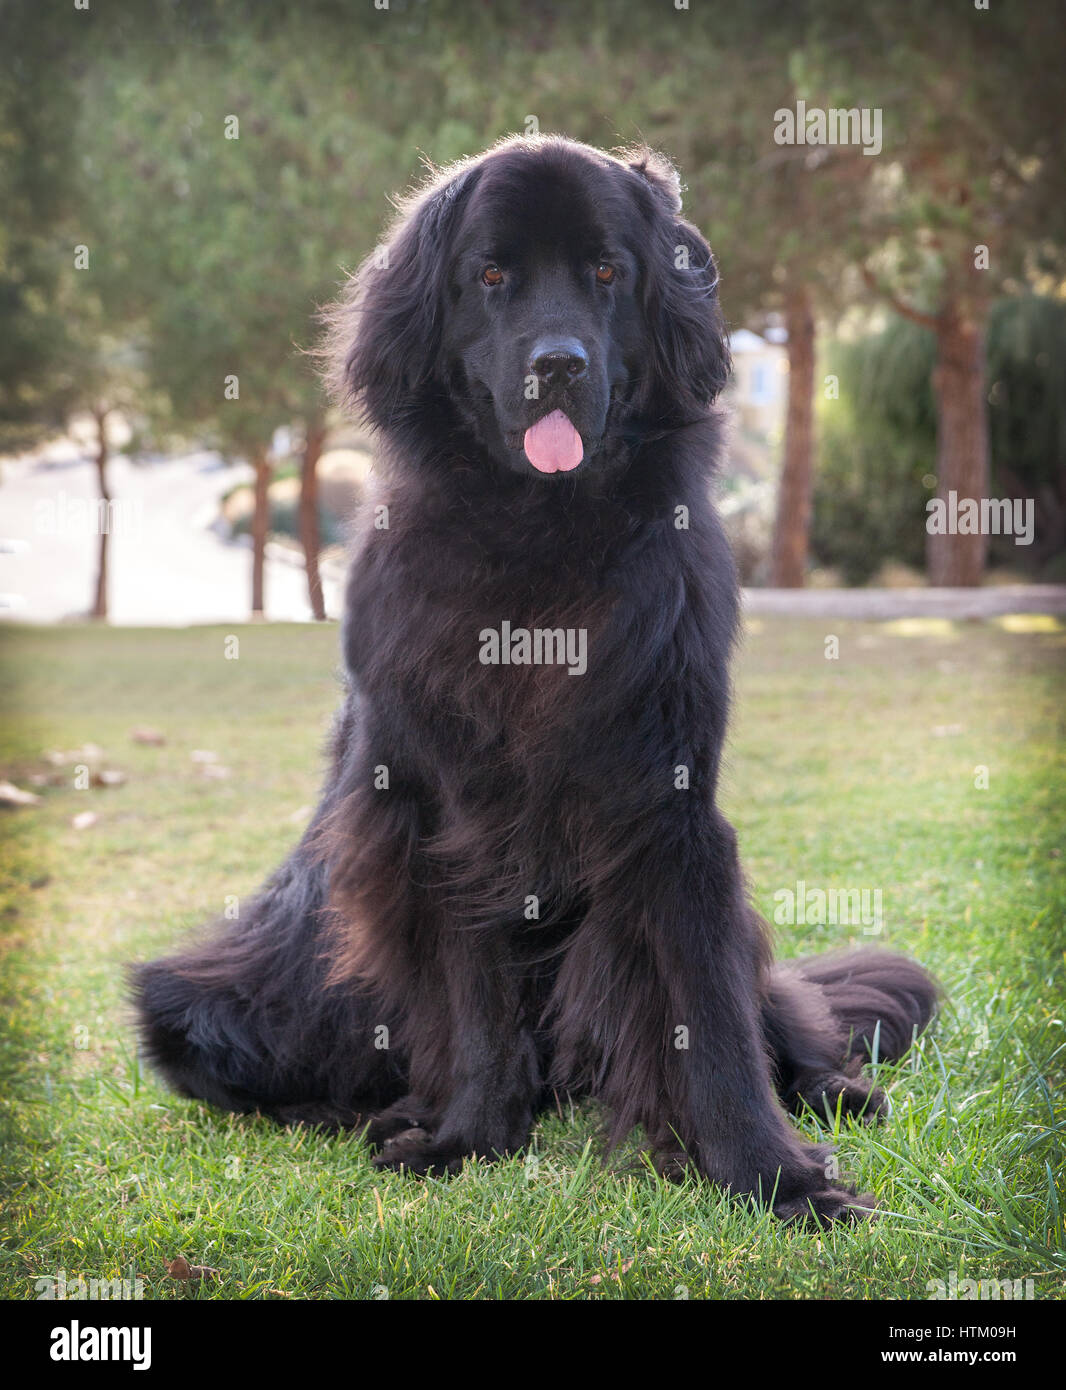 extra large black newfoundland dog standing looking forward.  She is in a park standing on some dry grass.  There - Stock Image